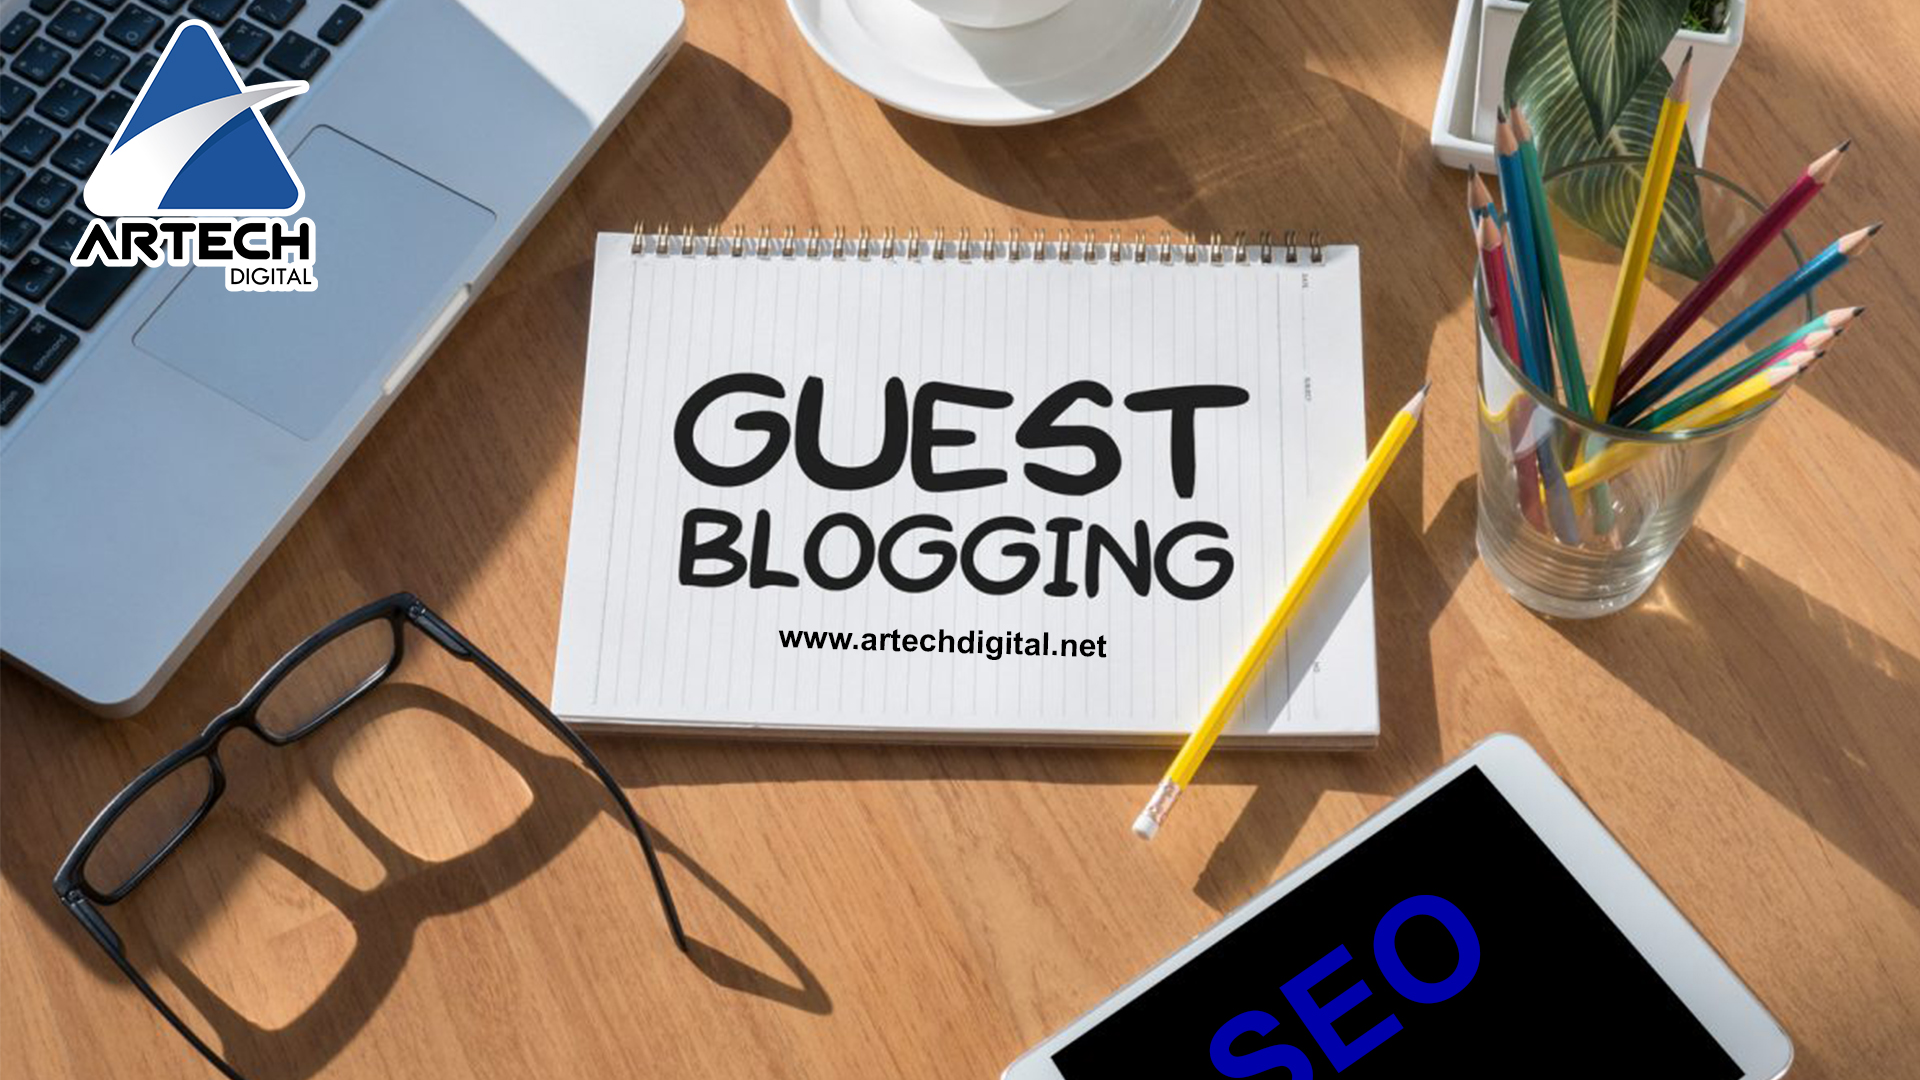 artech digital - guest blogging - sitio web